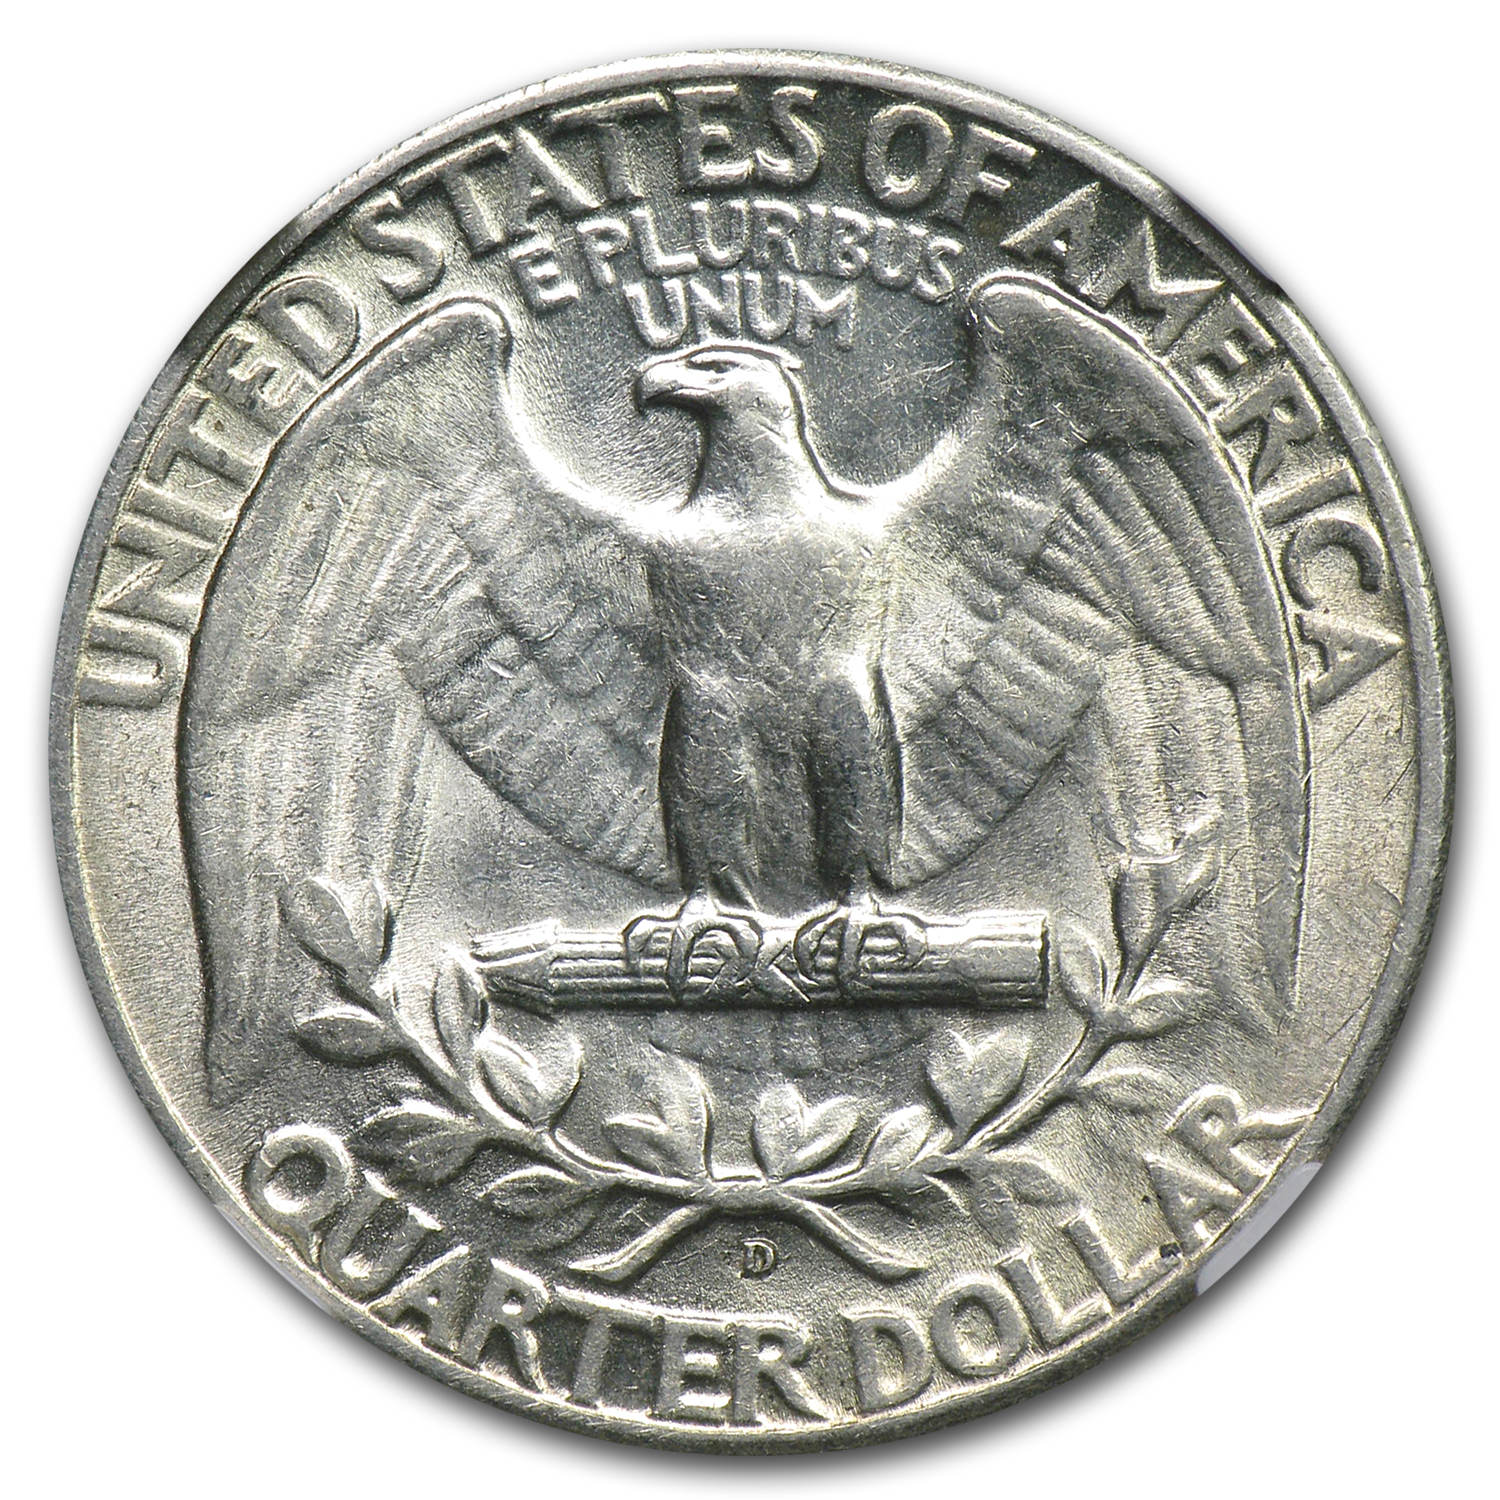 1936-D Almost Uncirculated-55 NGC Washington Quarter